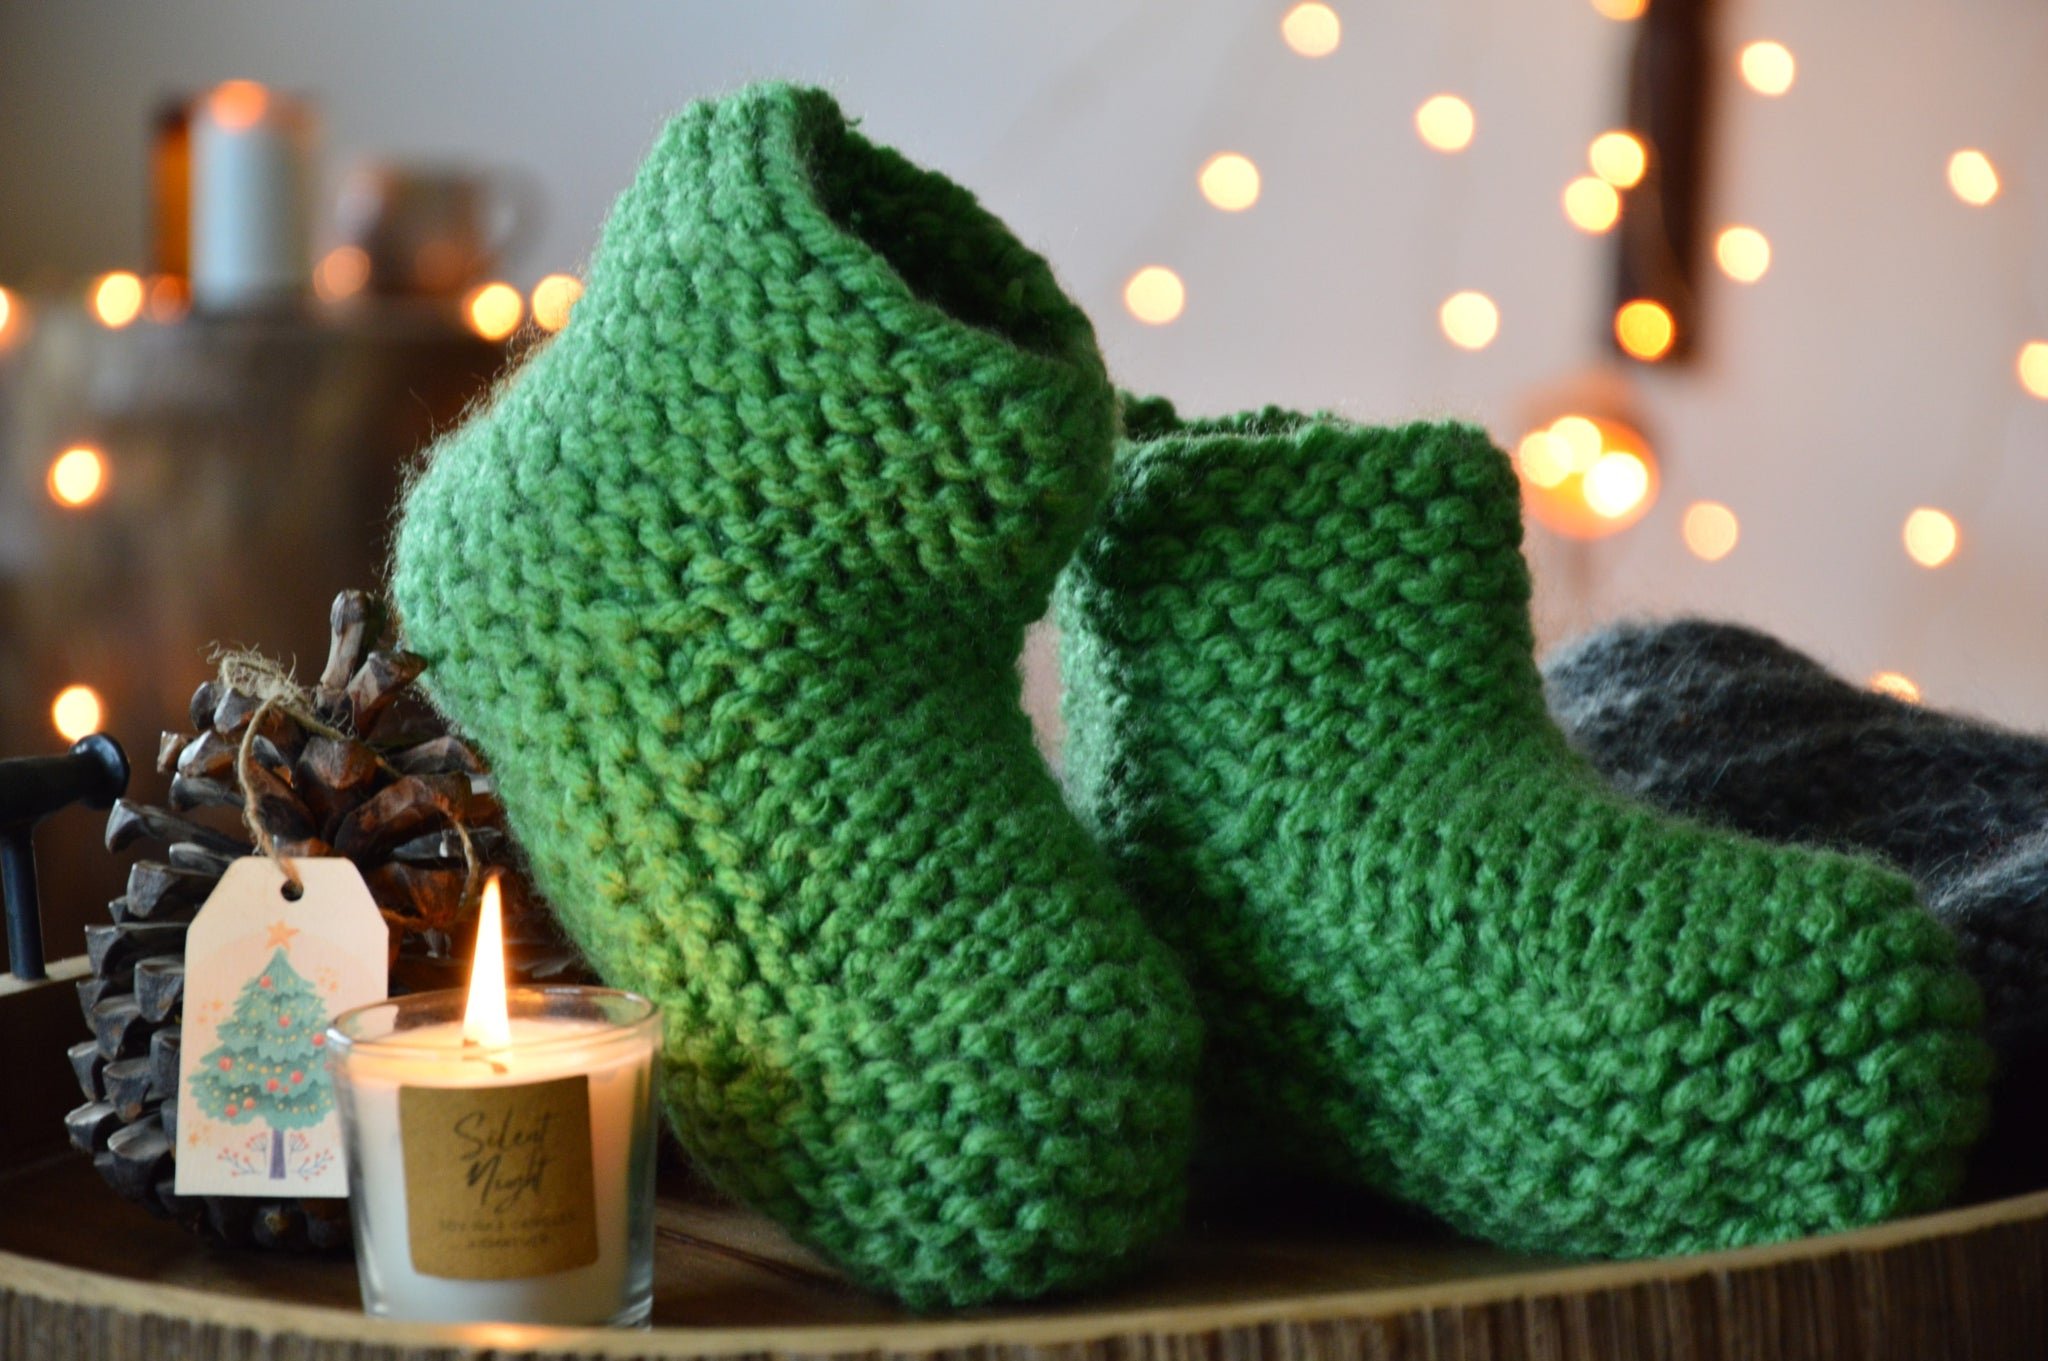 Pastel Green Booties & Bed Socks | Woven Stories